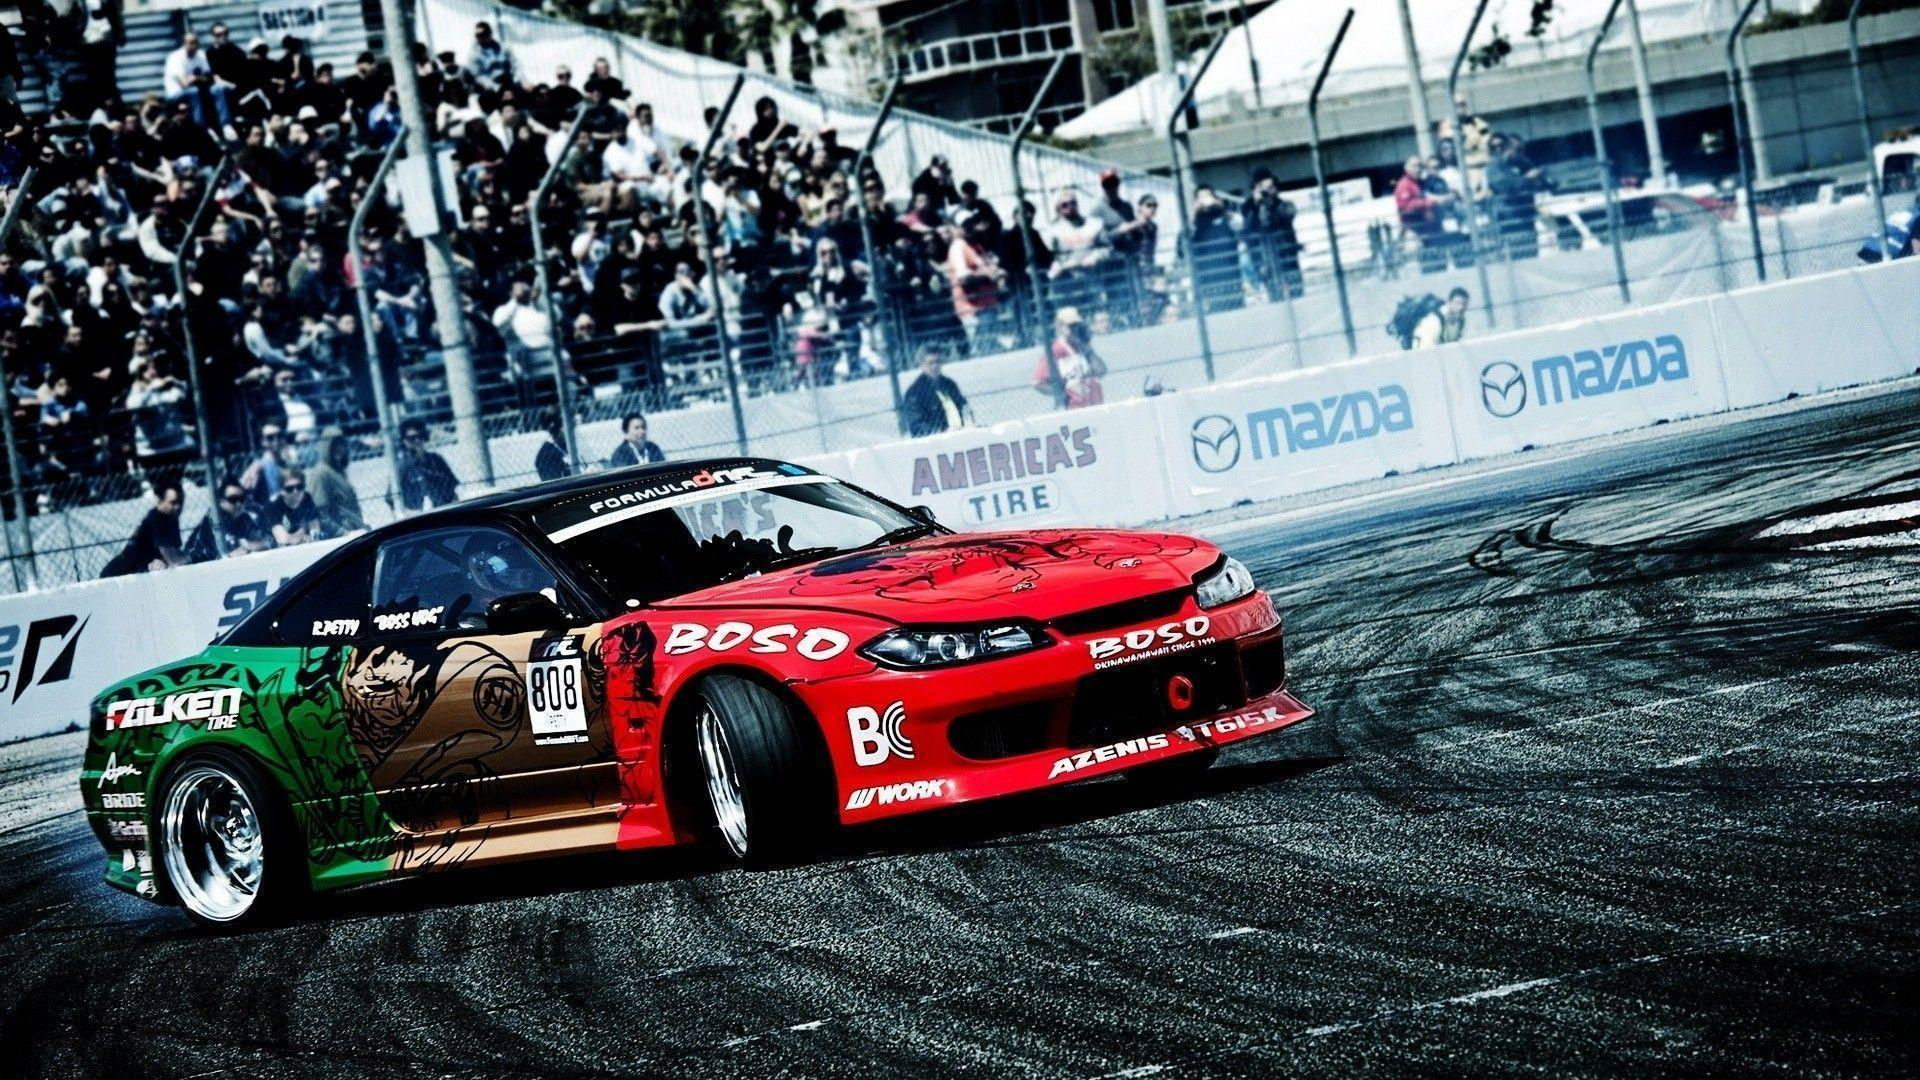 drift-car-wallpaper-2 | Best Wallpaper Gallery